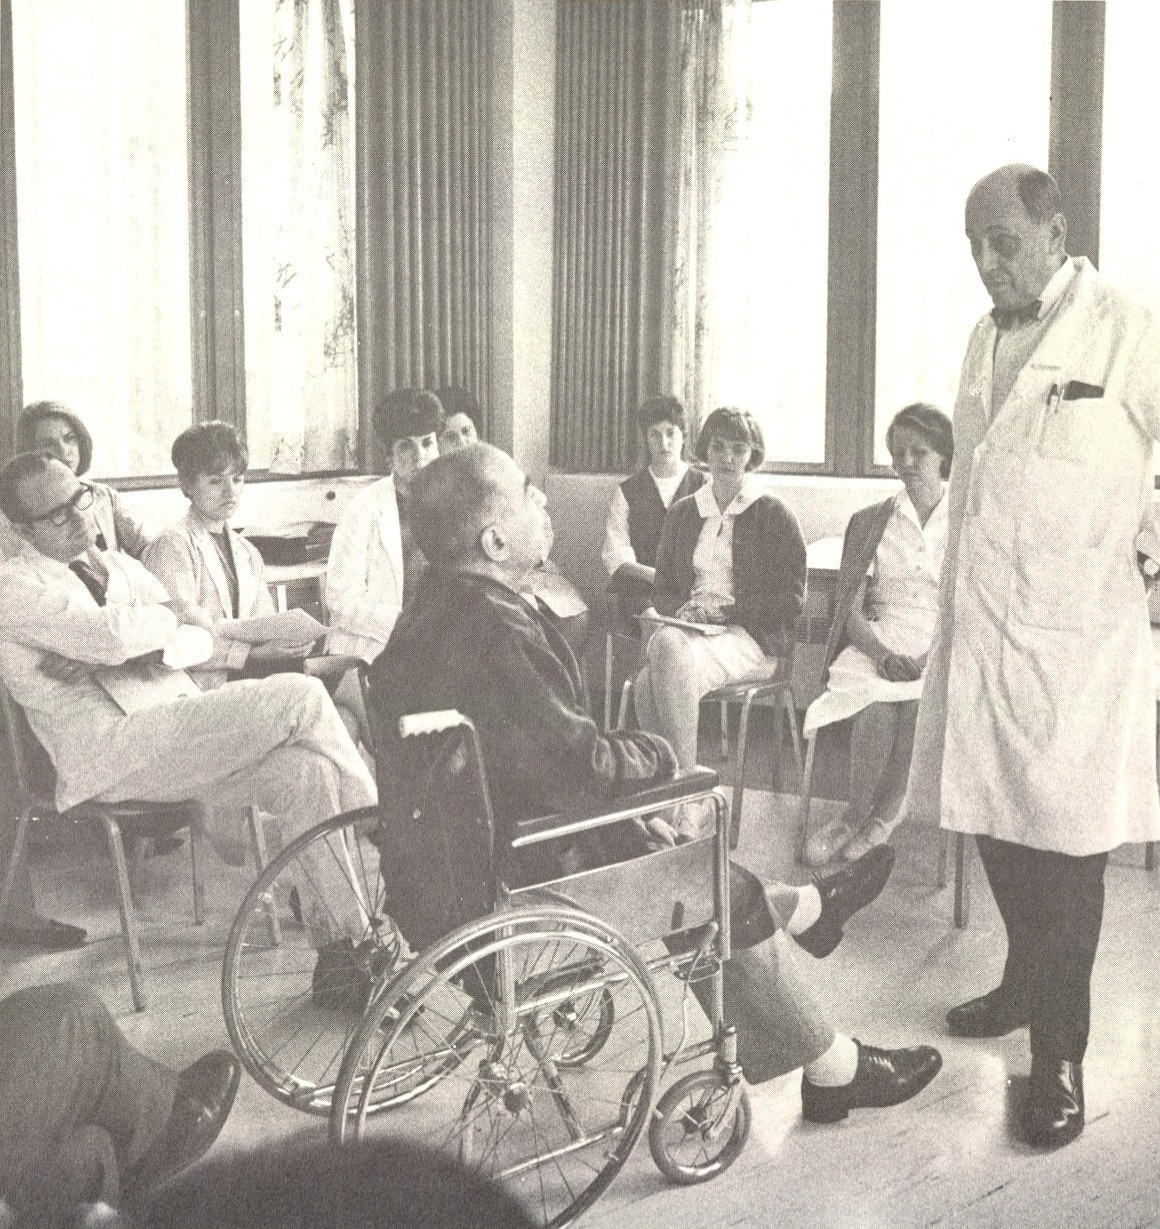 Historic photo of Rehabilitation Medicine department. A group of doctors and nurses examine a patient in a wheelchair